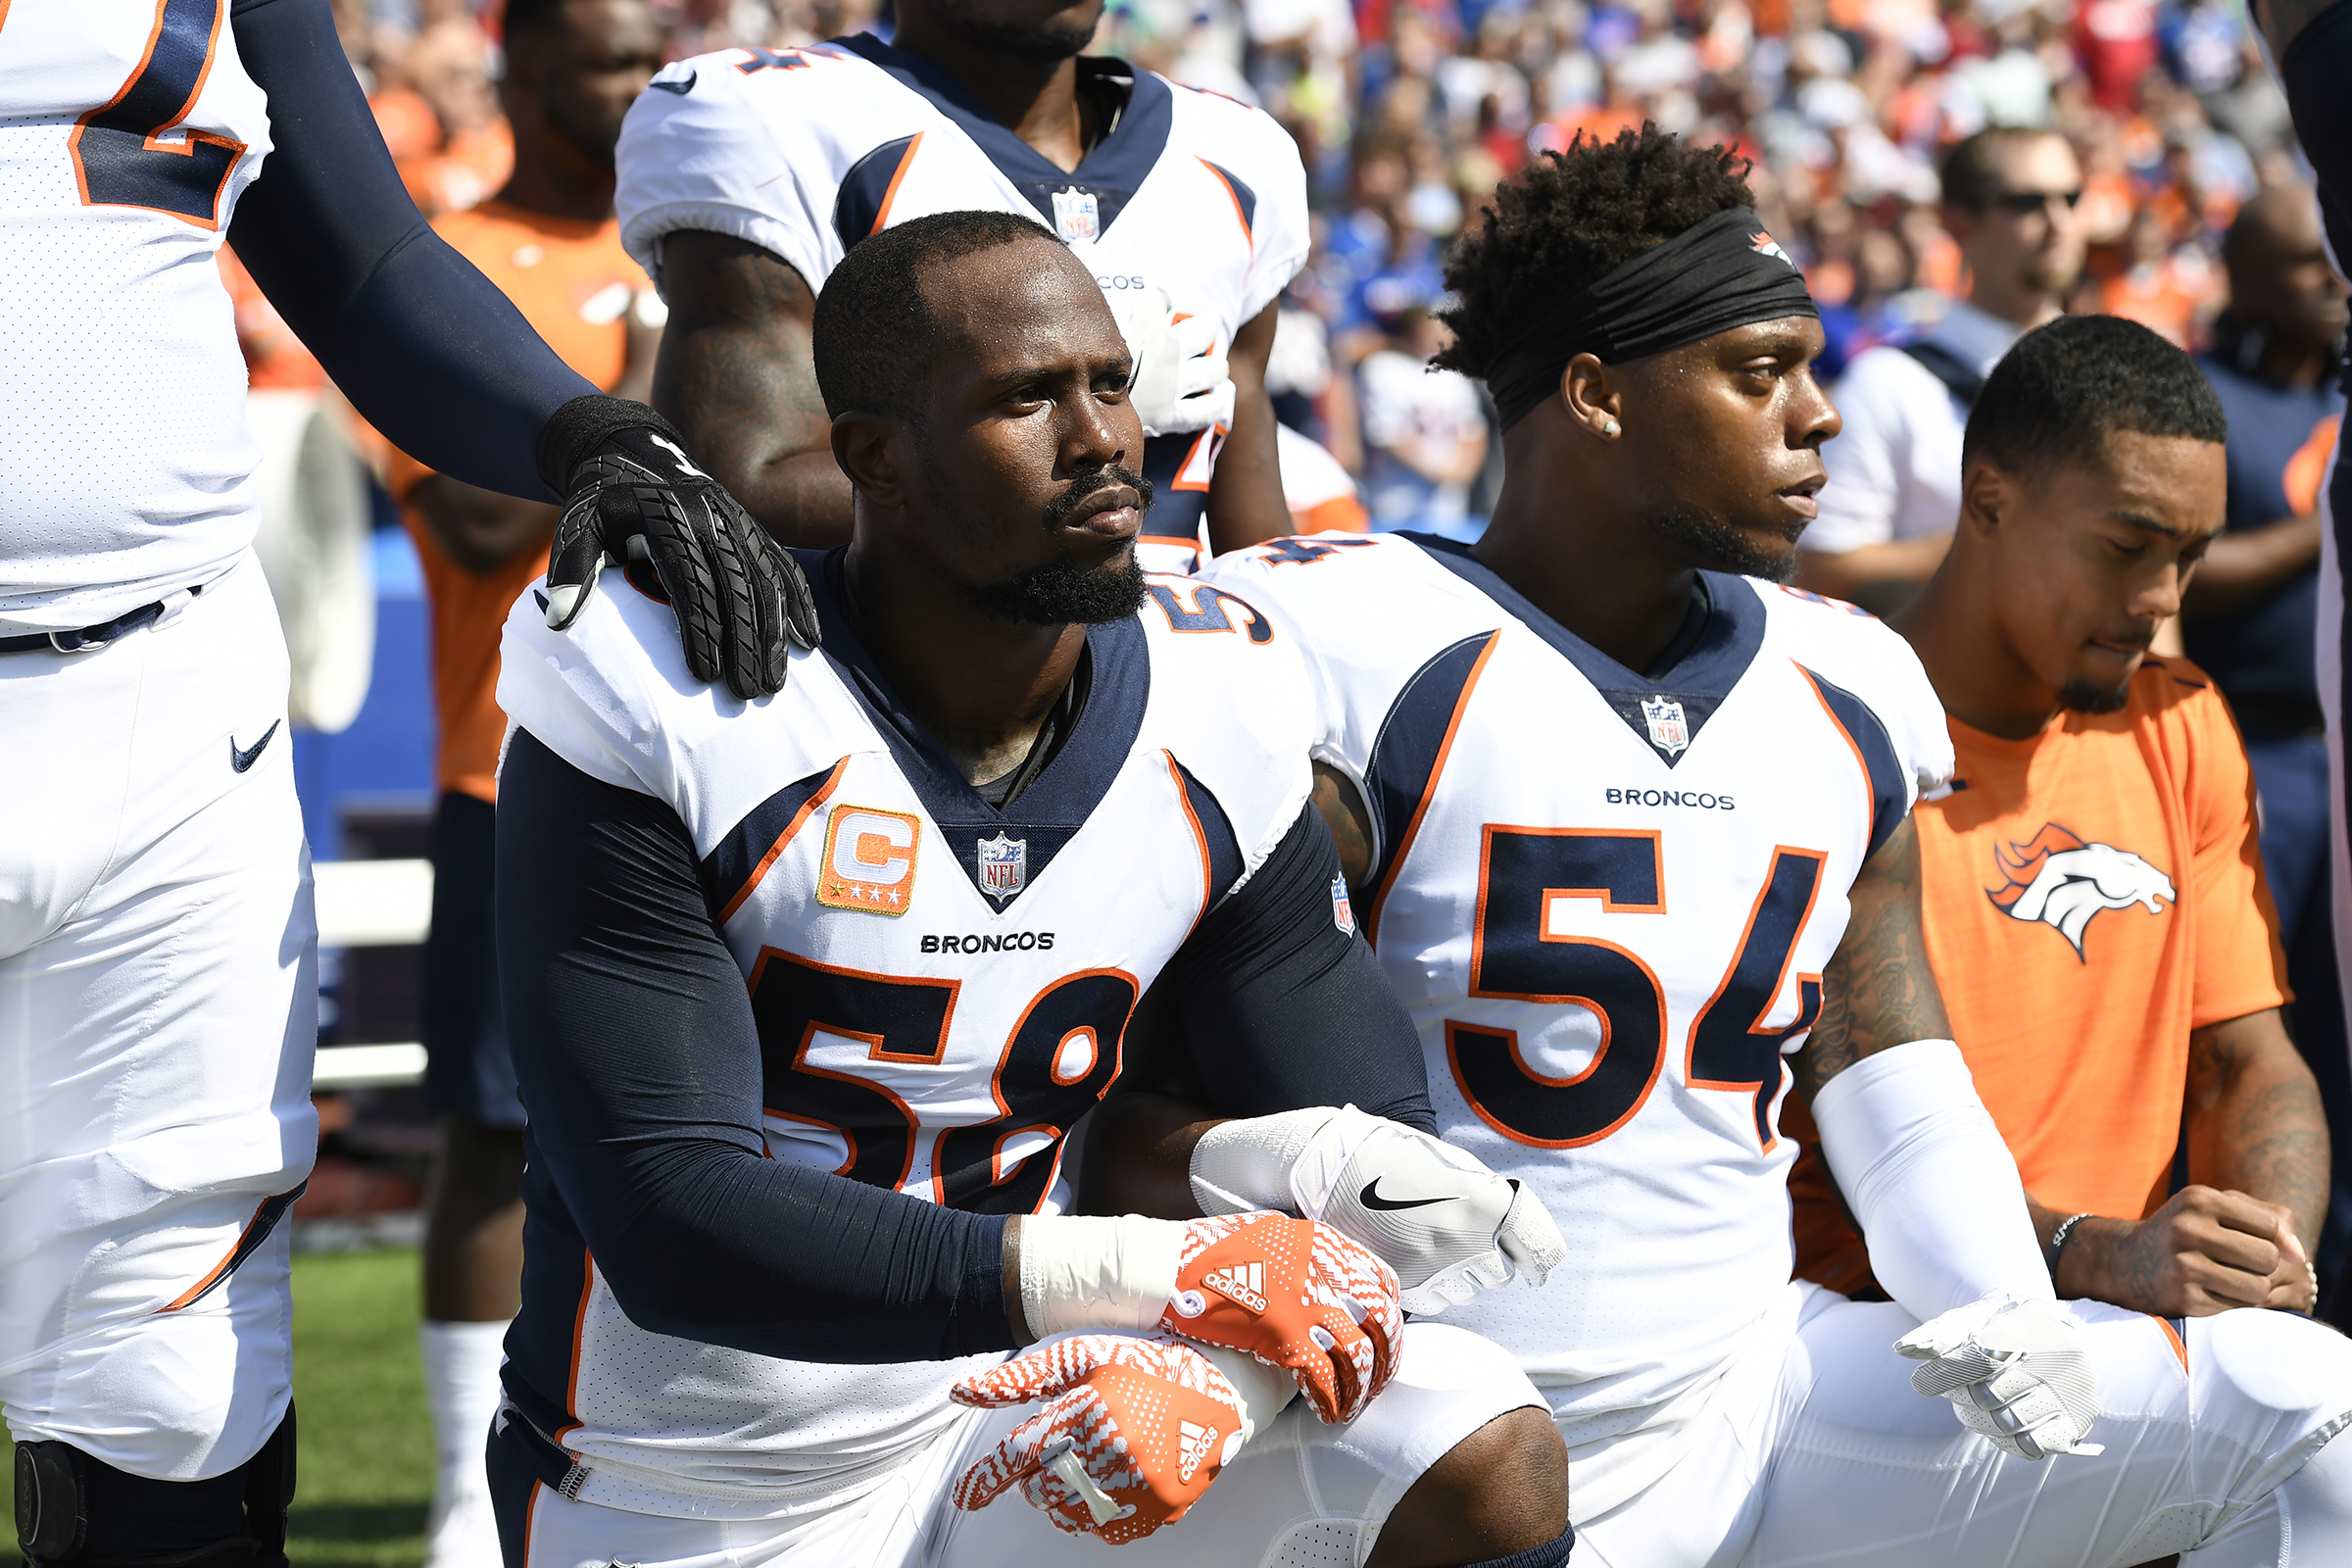 Denver Broncos outside linebacker Von Miller (58) and inside linebacker Brandon Marshall (54) take a knee during the national anthem on September 24, 2017 at New Era Field in Orchard Park, NY.